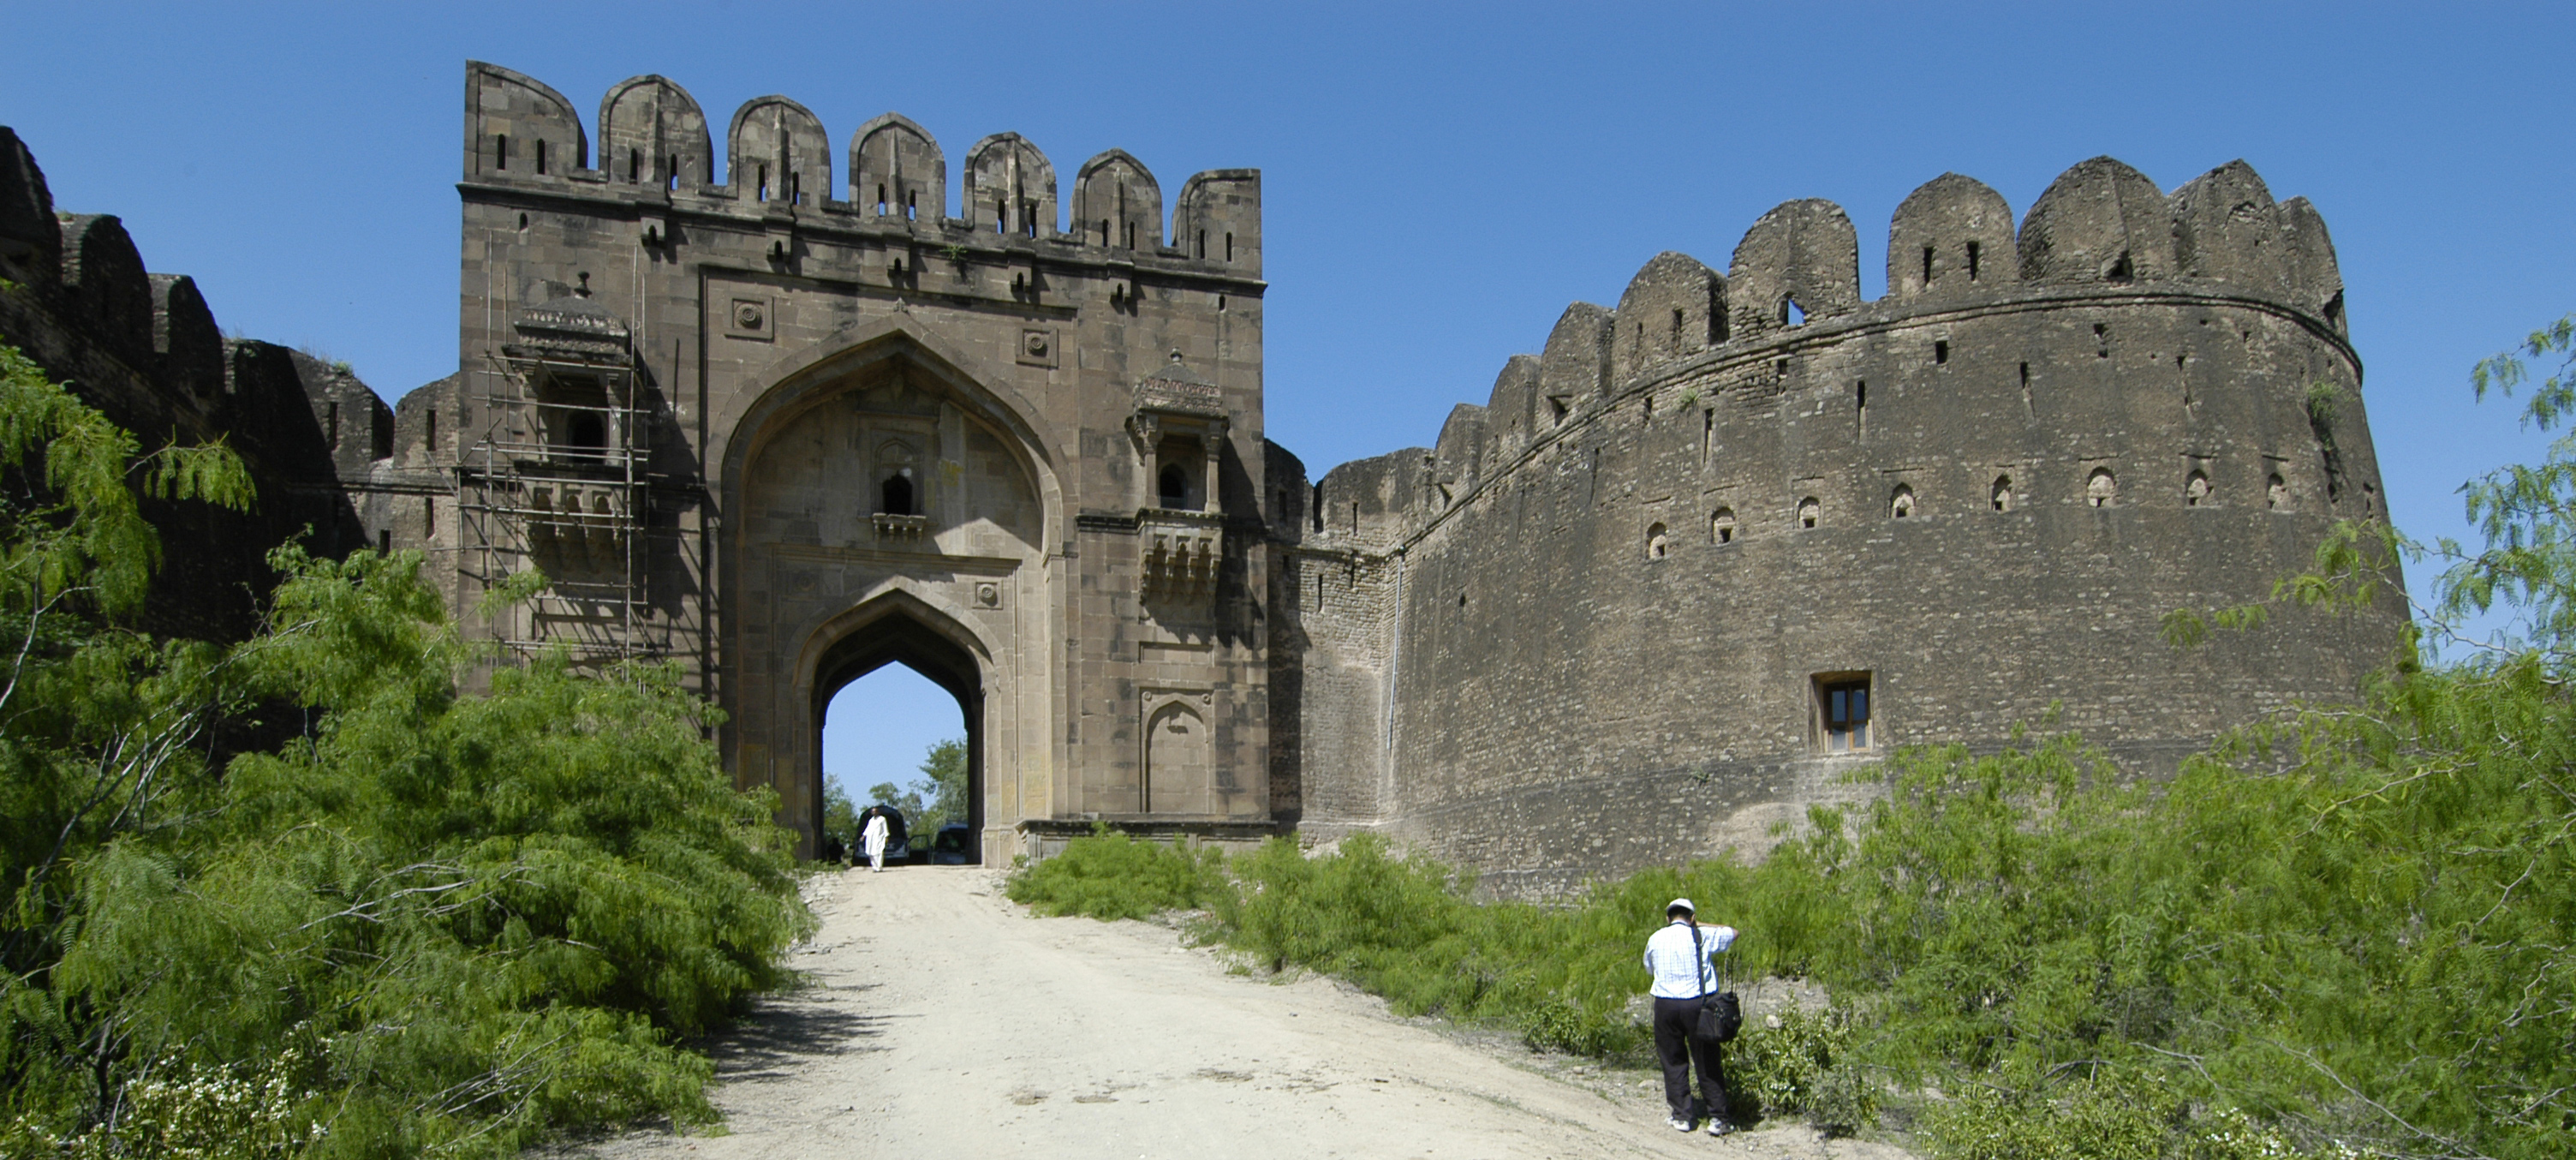 rohtas fort « A Photo a Day